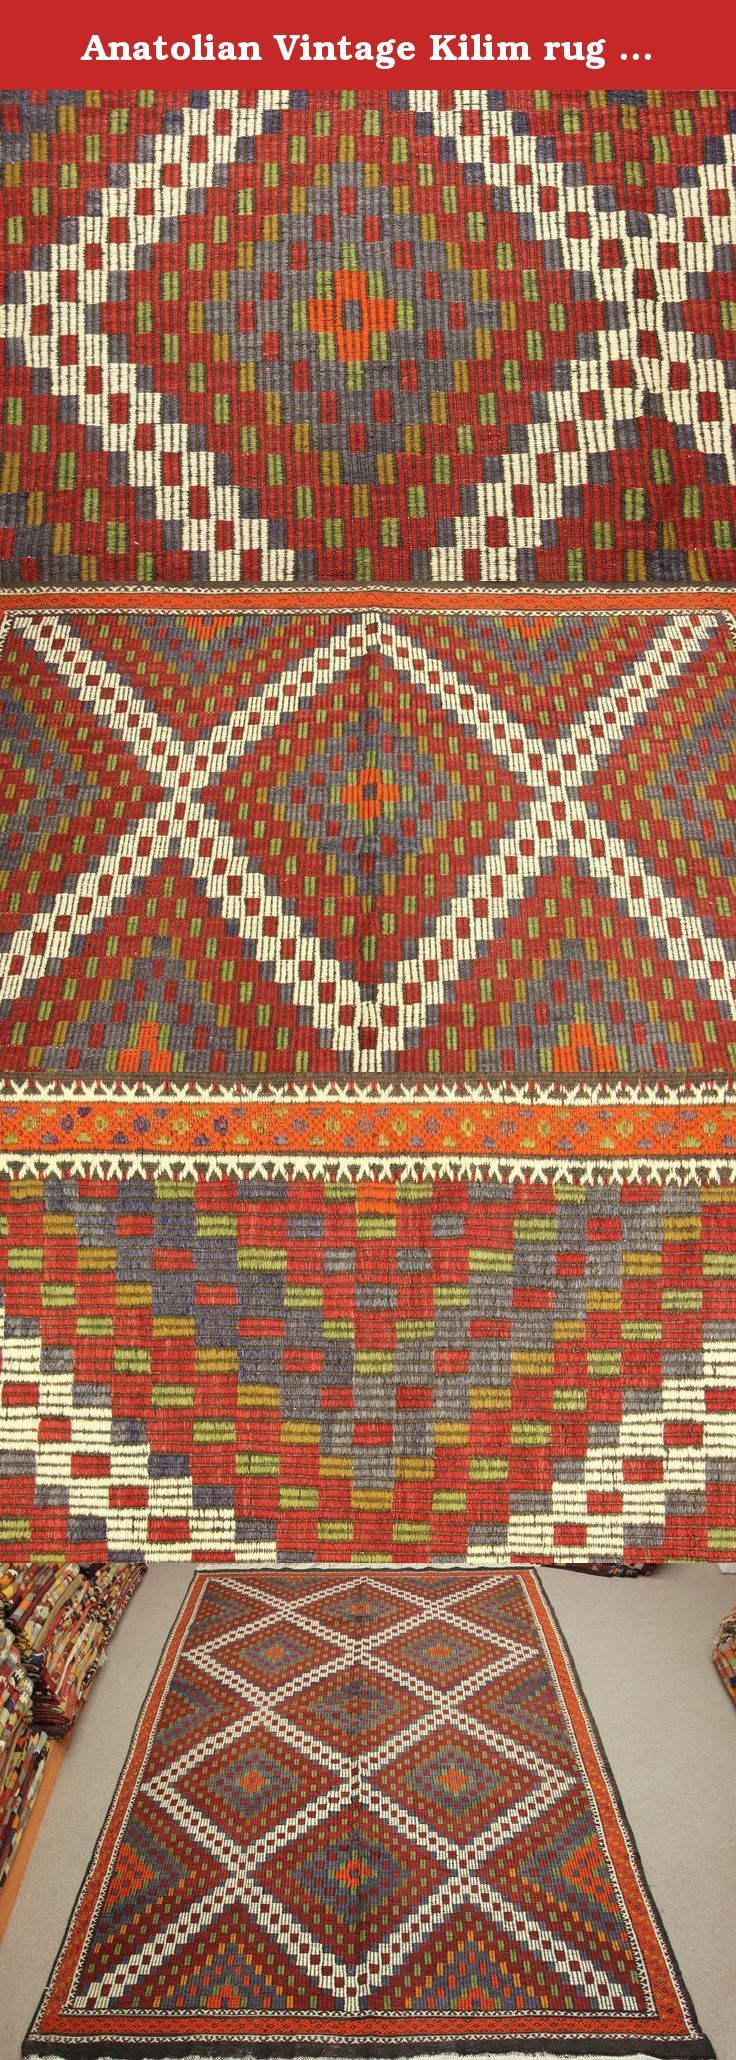 Anatolian Vintage Kilim rug 10,4x6,3 feet Area rug Cicim rug Organic Kilim Rug Natural kilim rug Bohemian Kilim Rug Ethnic Rugs. Turkish hand woven vintage unique kilim rug 10,4x6,3 feet / 125x76 inches / 320x195 Cm Origin: Turkey- Mut Material: wool on wool They made from wool on wool or wool on cotton. They are unique and natural dye. These kilim rugs are old and used, we restored items (Every items checked for have damage,hole or wear Then we washed natural shampoo and make repair true...